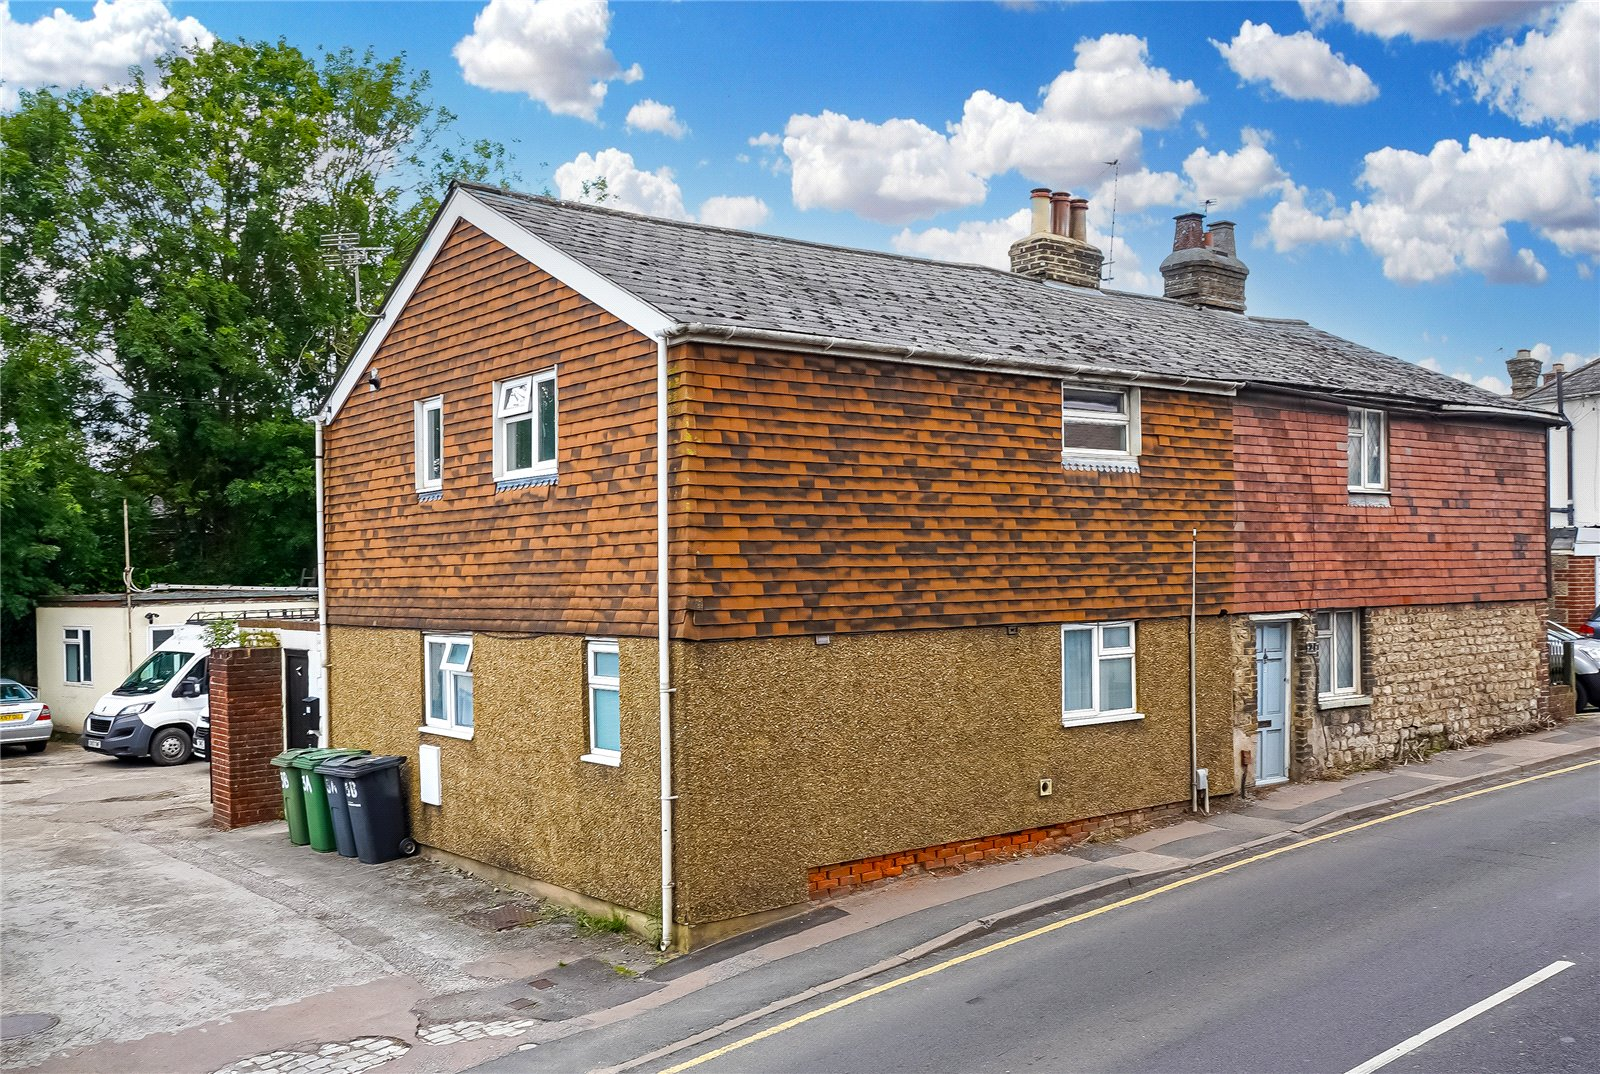 2 bed apartment for sale in Tovil Hill, Maidstone, ME15